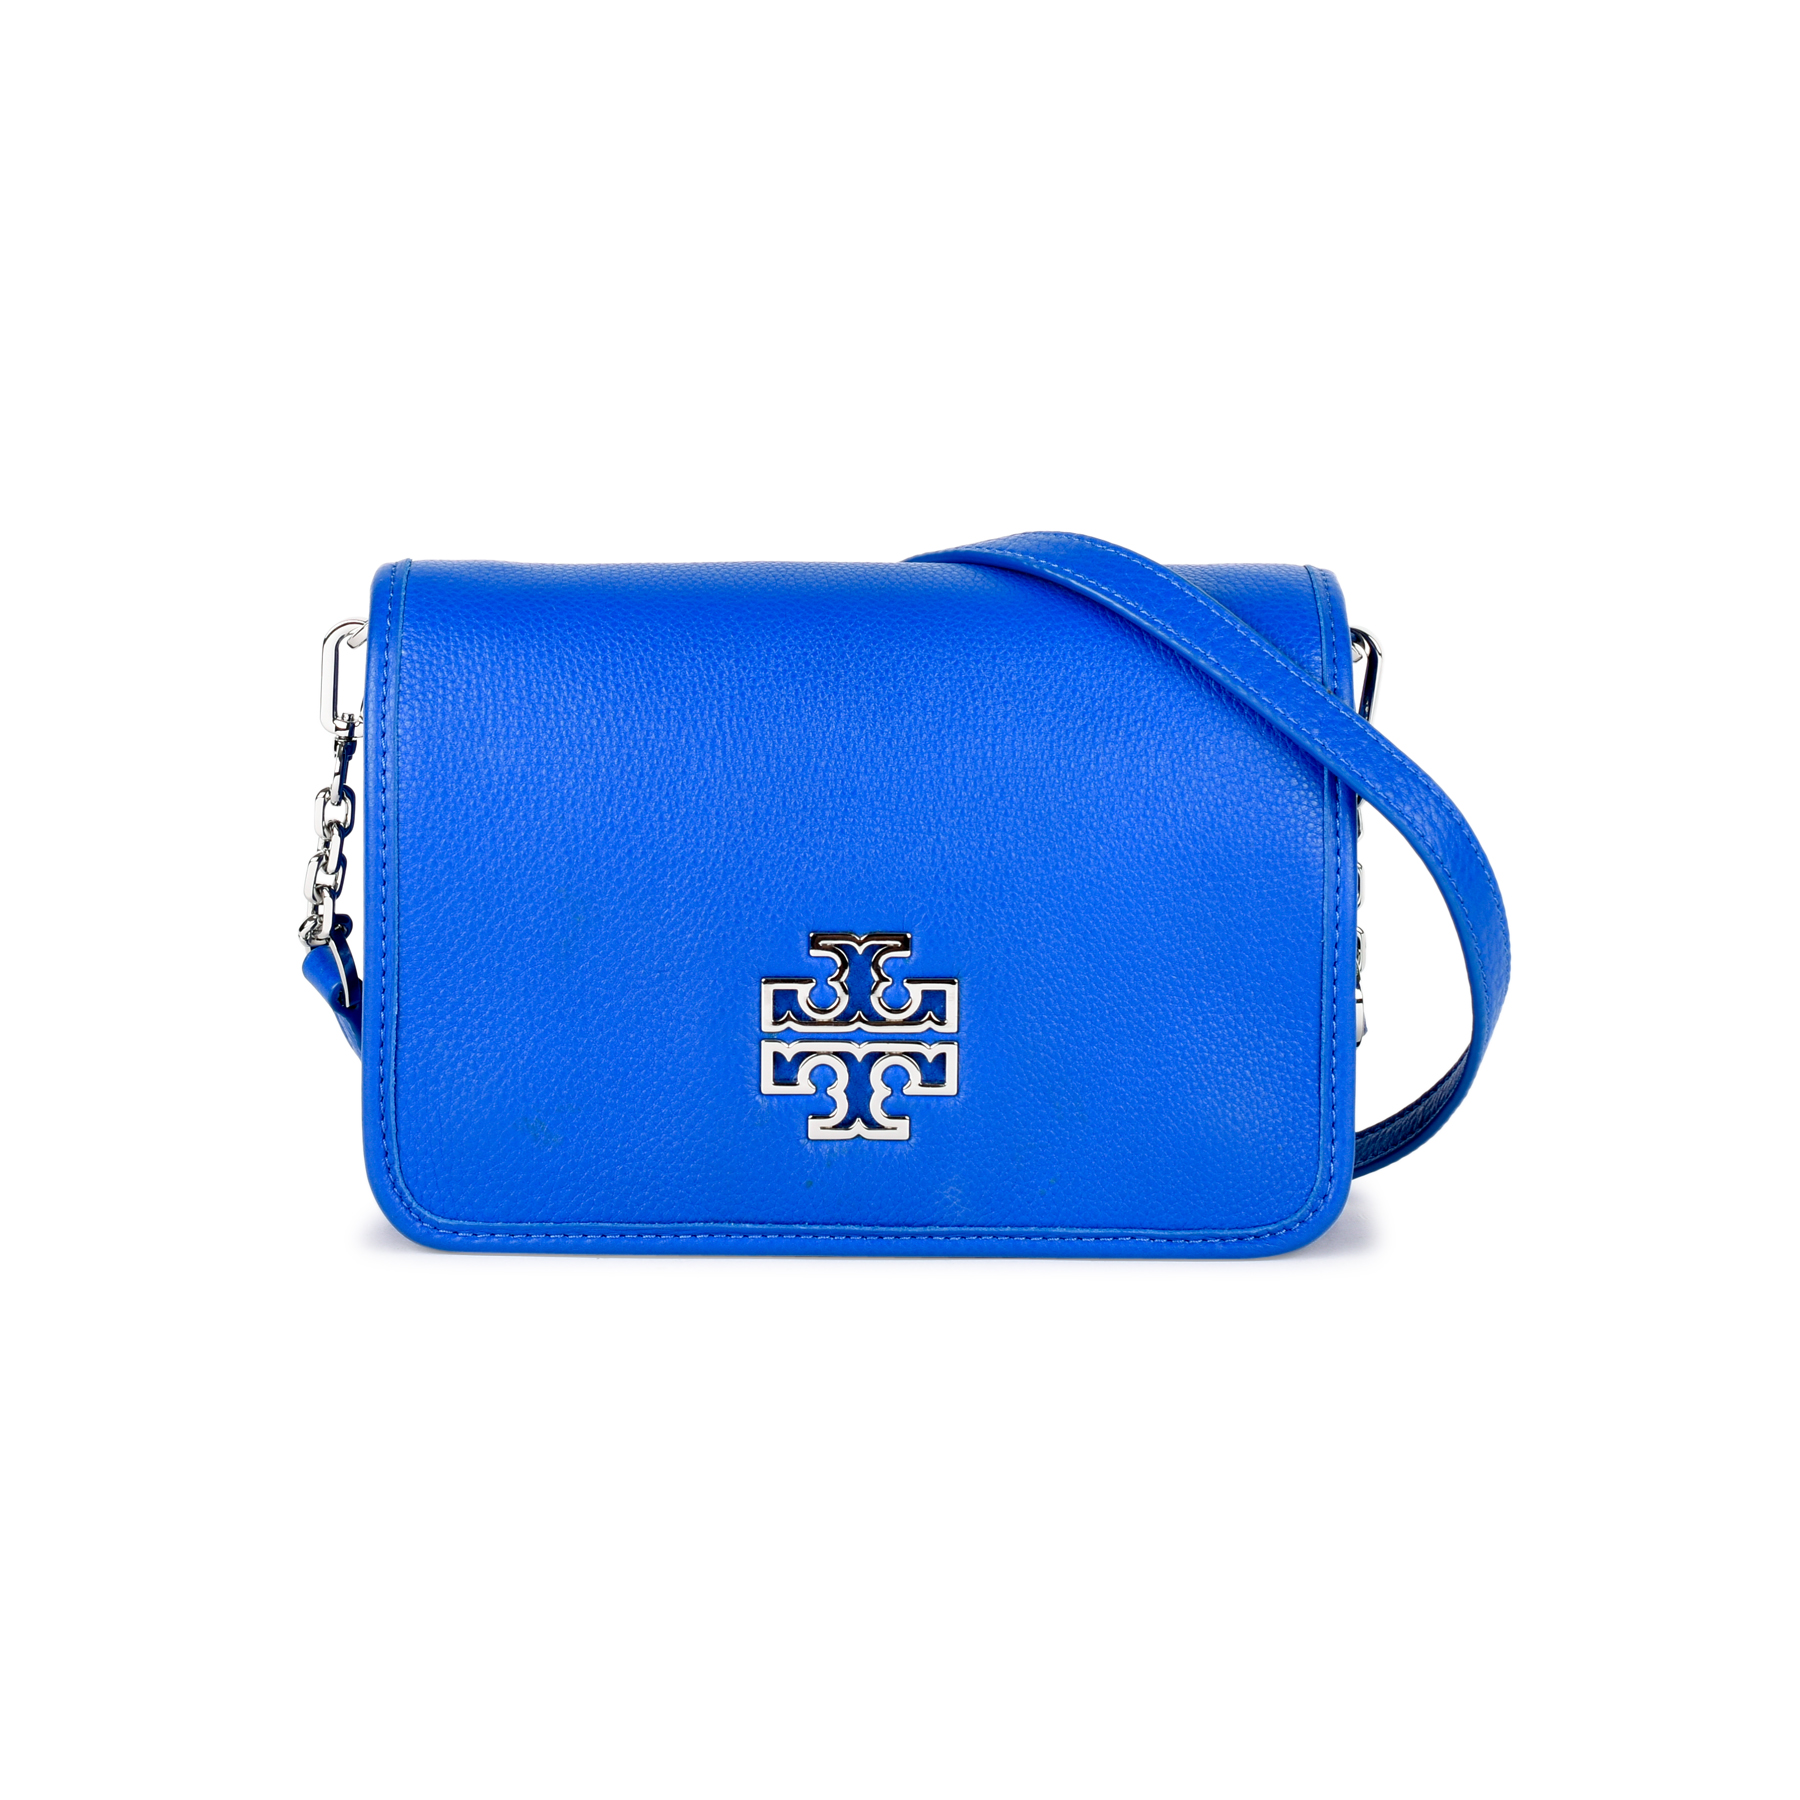 Authentic Pre Owned Tory Burch Britten Combo Crossbody Bag (PSS-442-00014)   59e6fe983